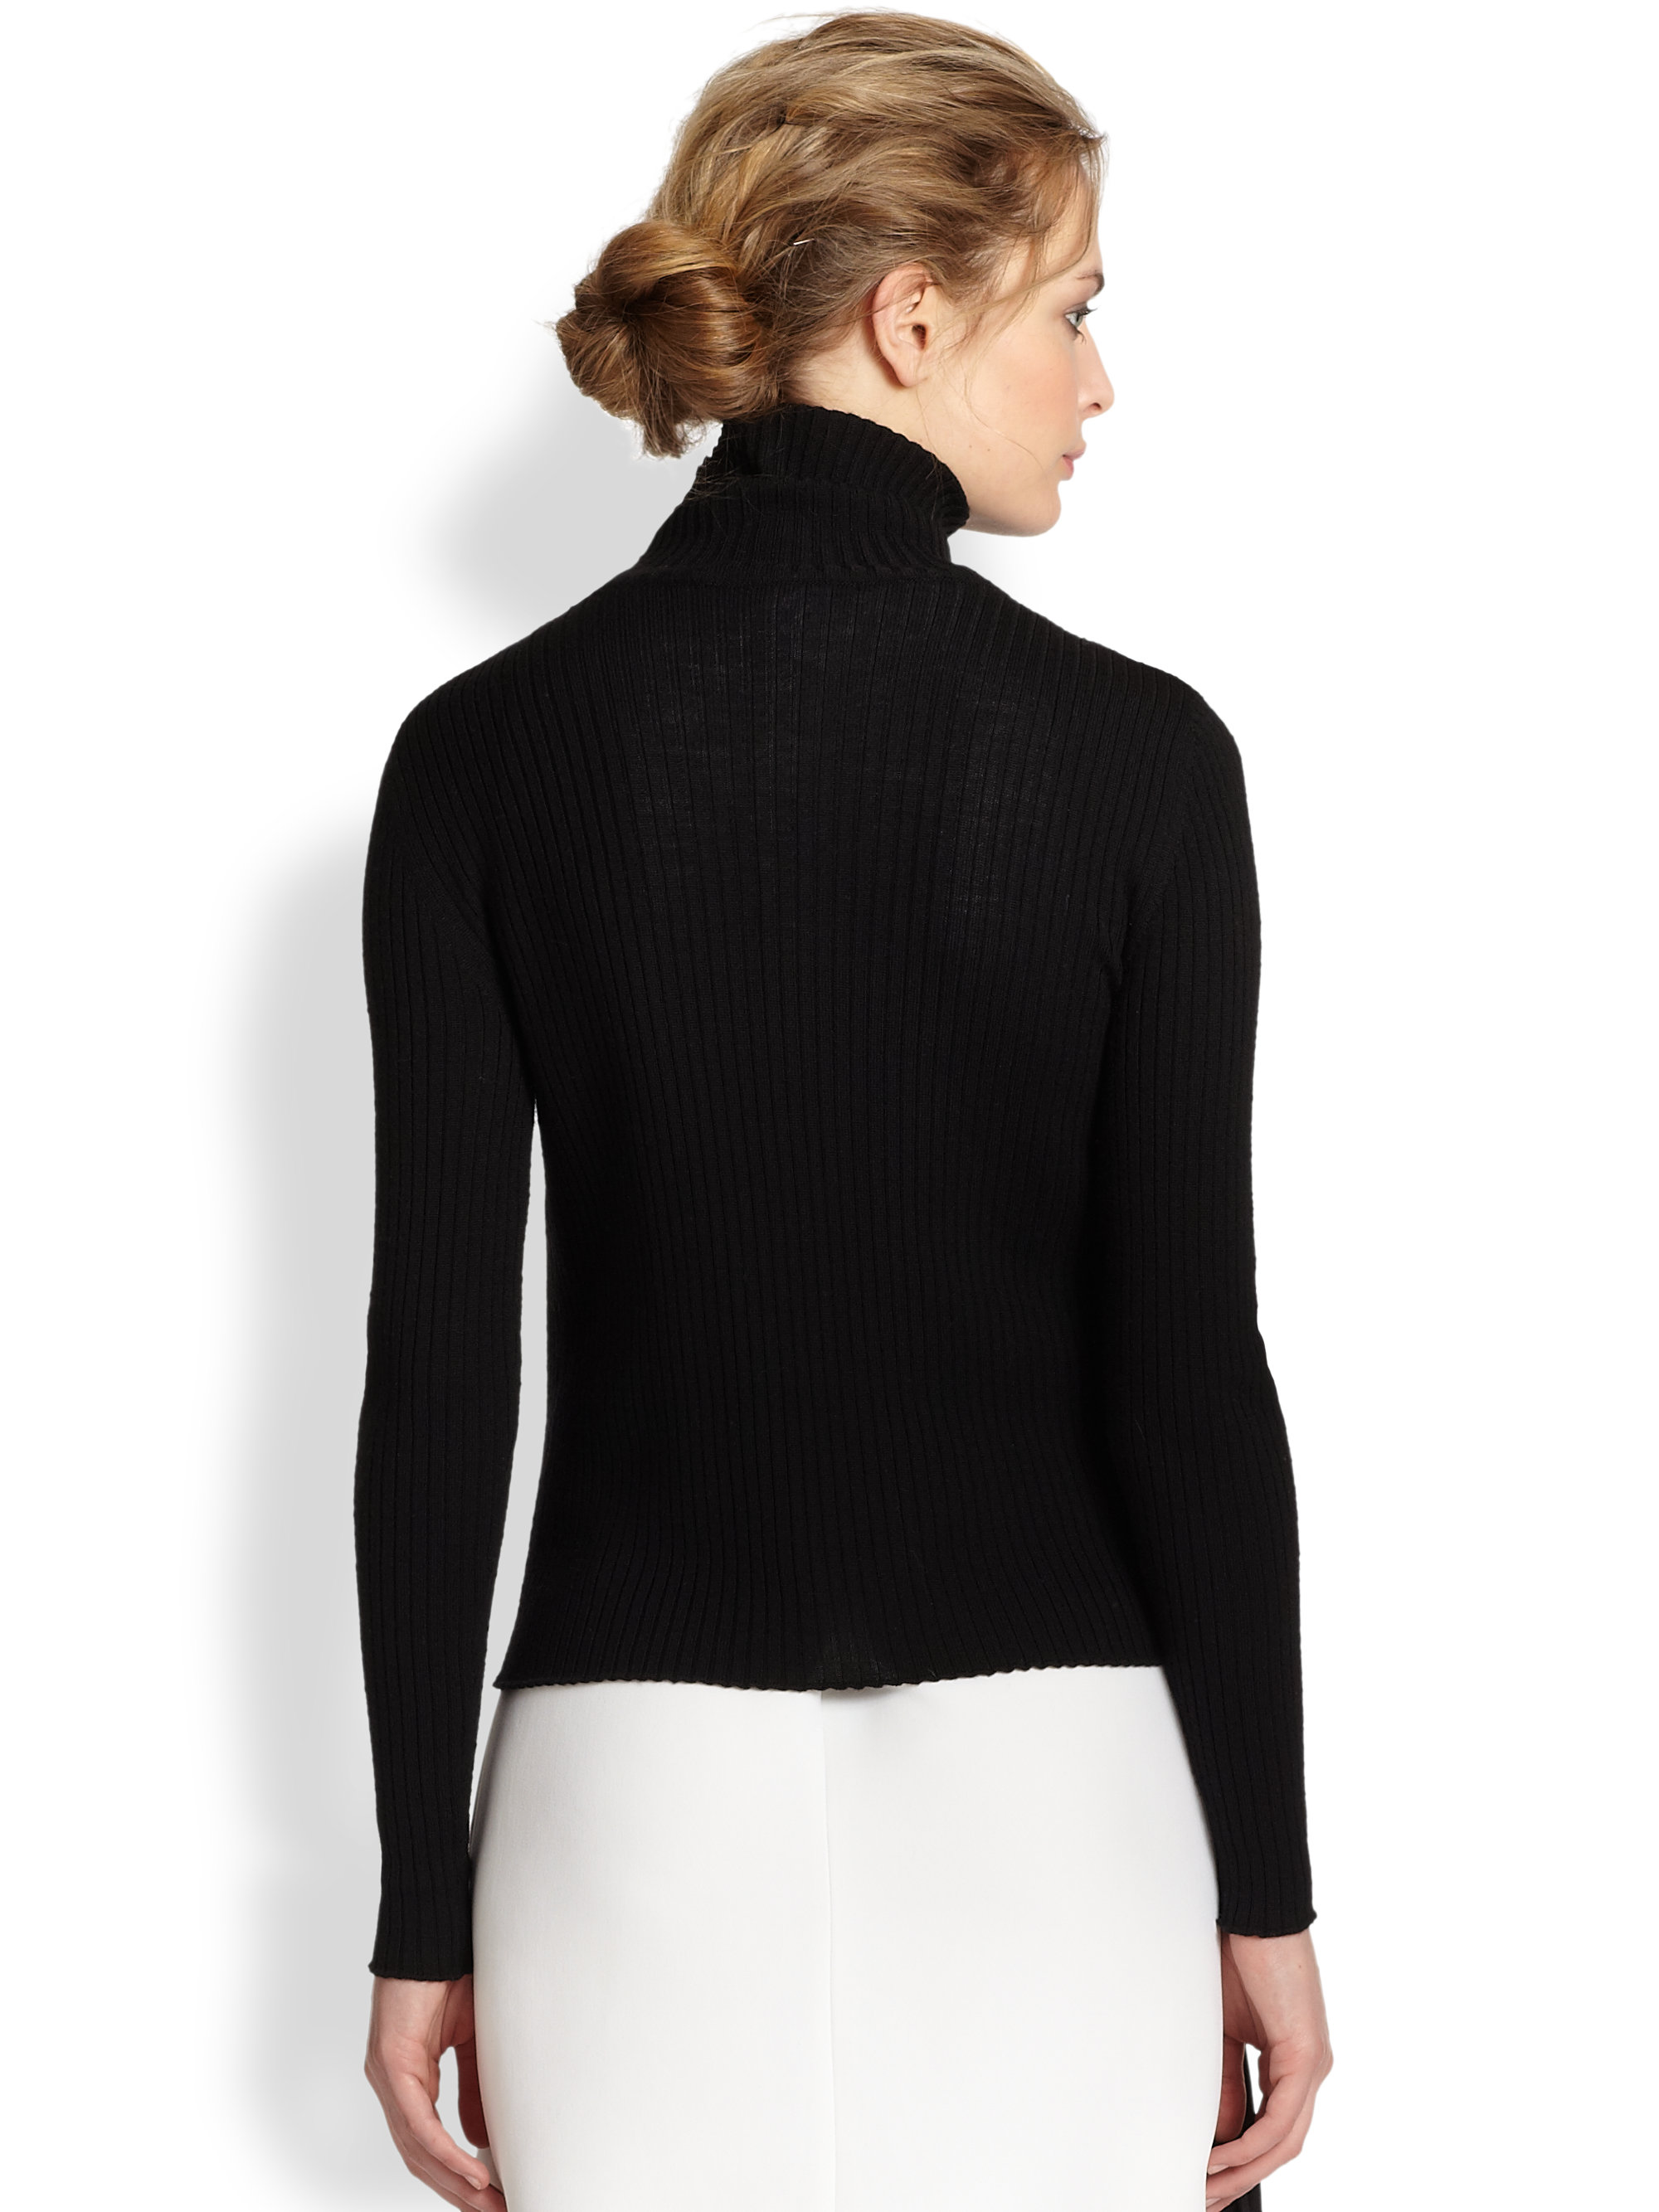 Vanessa bruno Ribbed Merino Wool Turtleneck Sweater in Black | Lyst